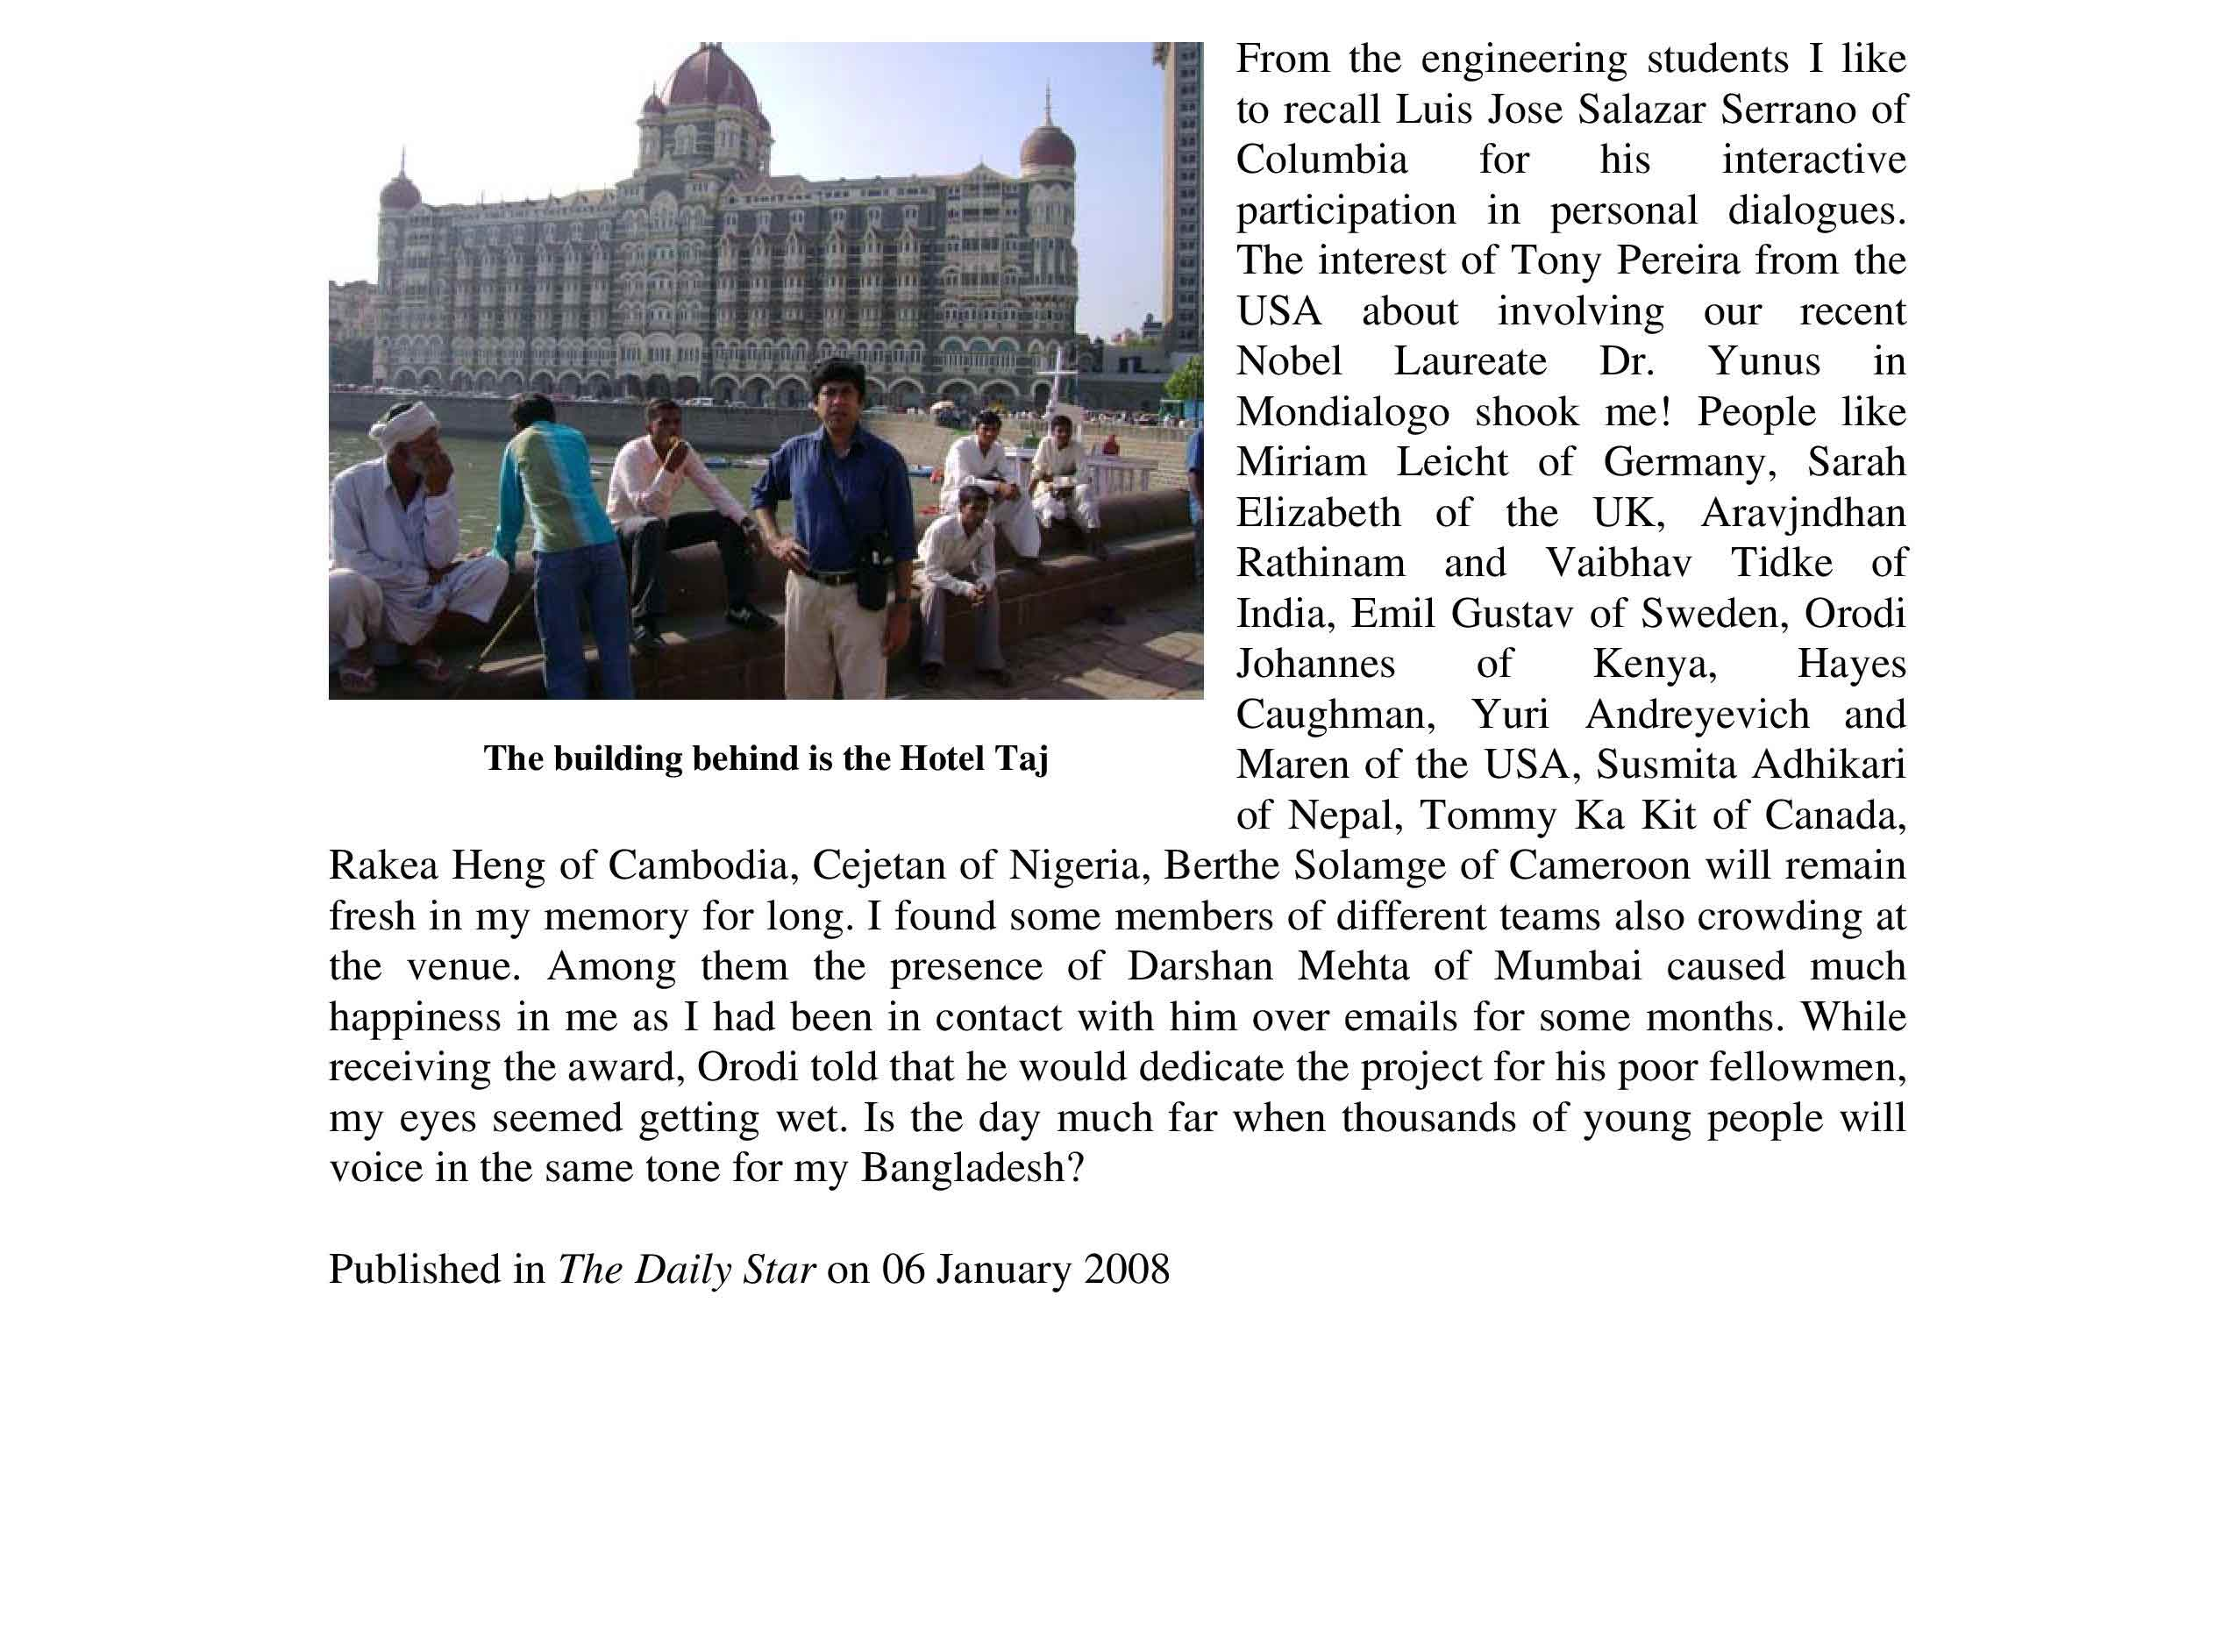 Global-Dialogue--Mumbai-or-Elsewhere-page-004